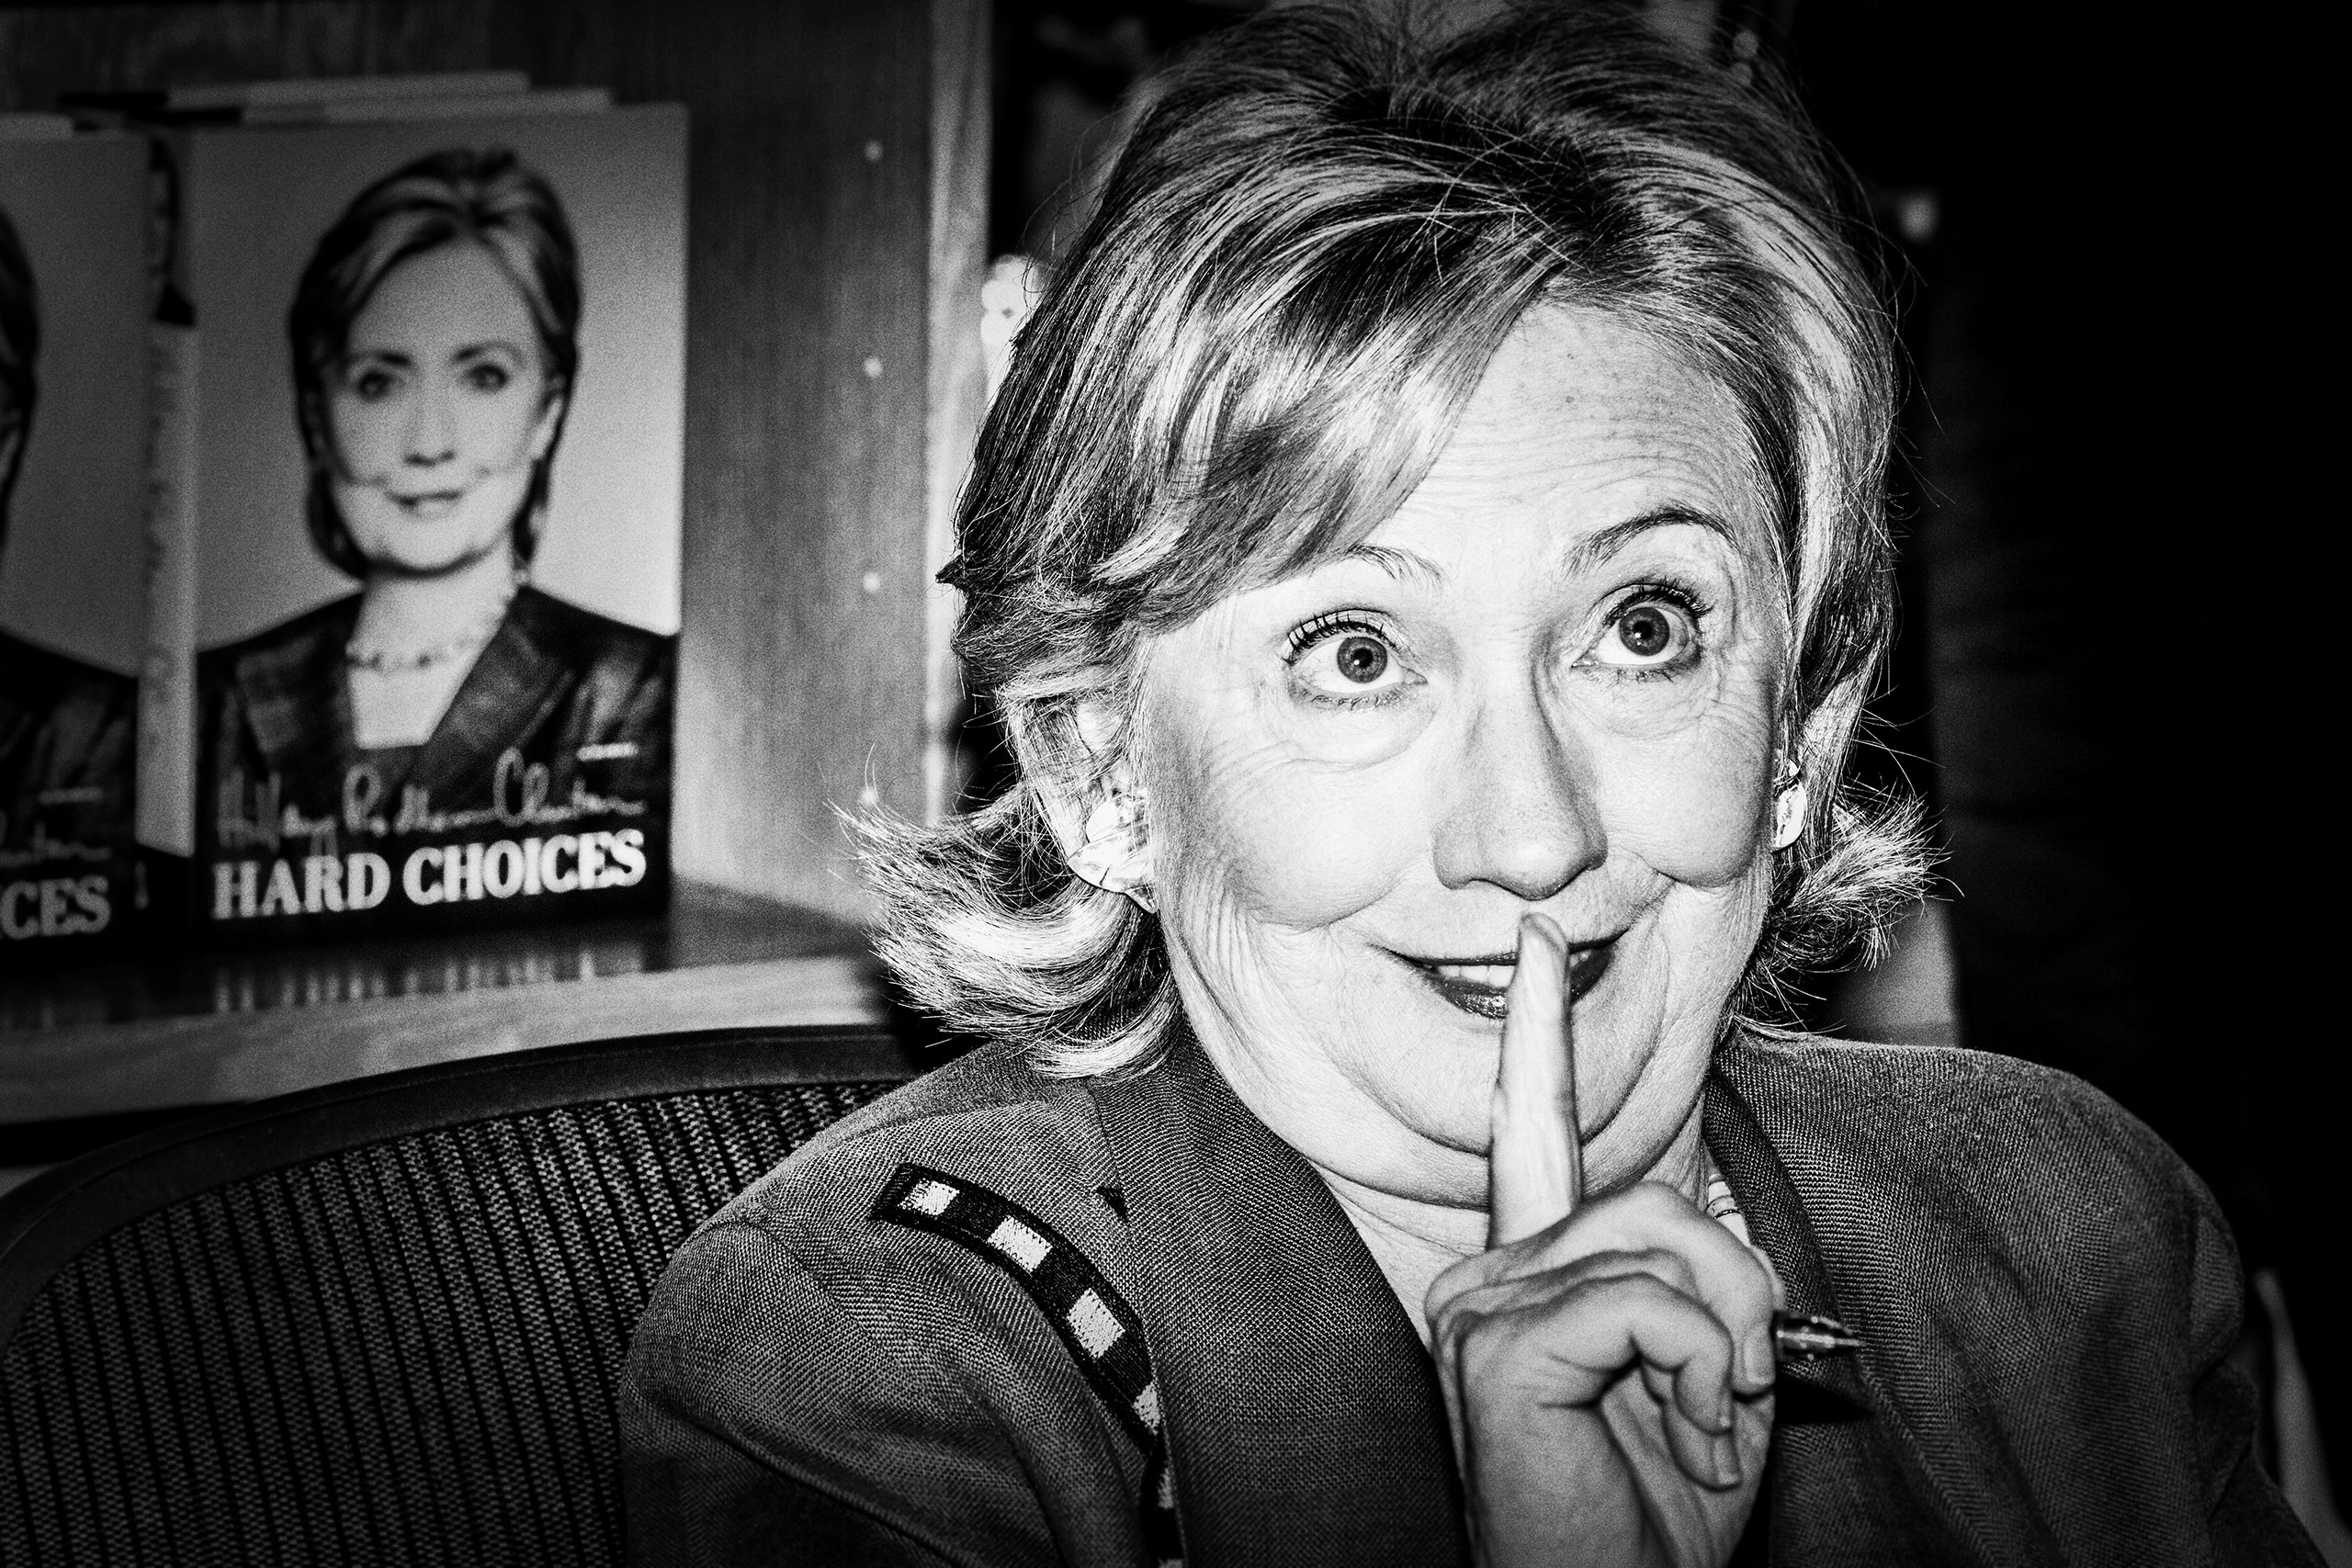 Former First Lady and former Secretary of State Hillary Clinton signs copies of her book  Hard Choices  in East Hampton, NY on Aug. 16, 2014.